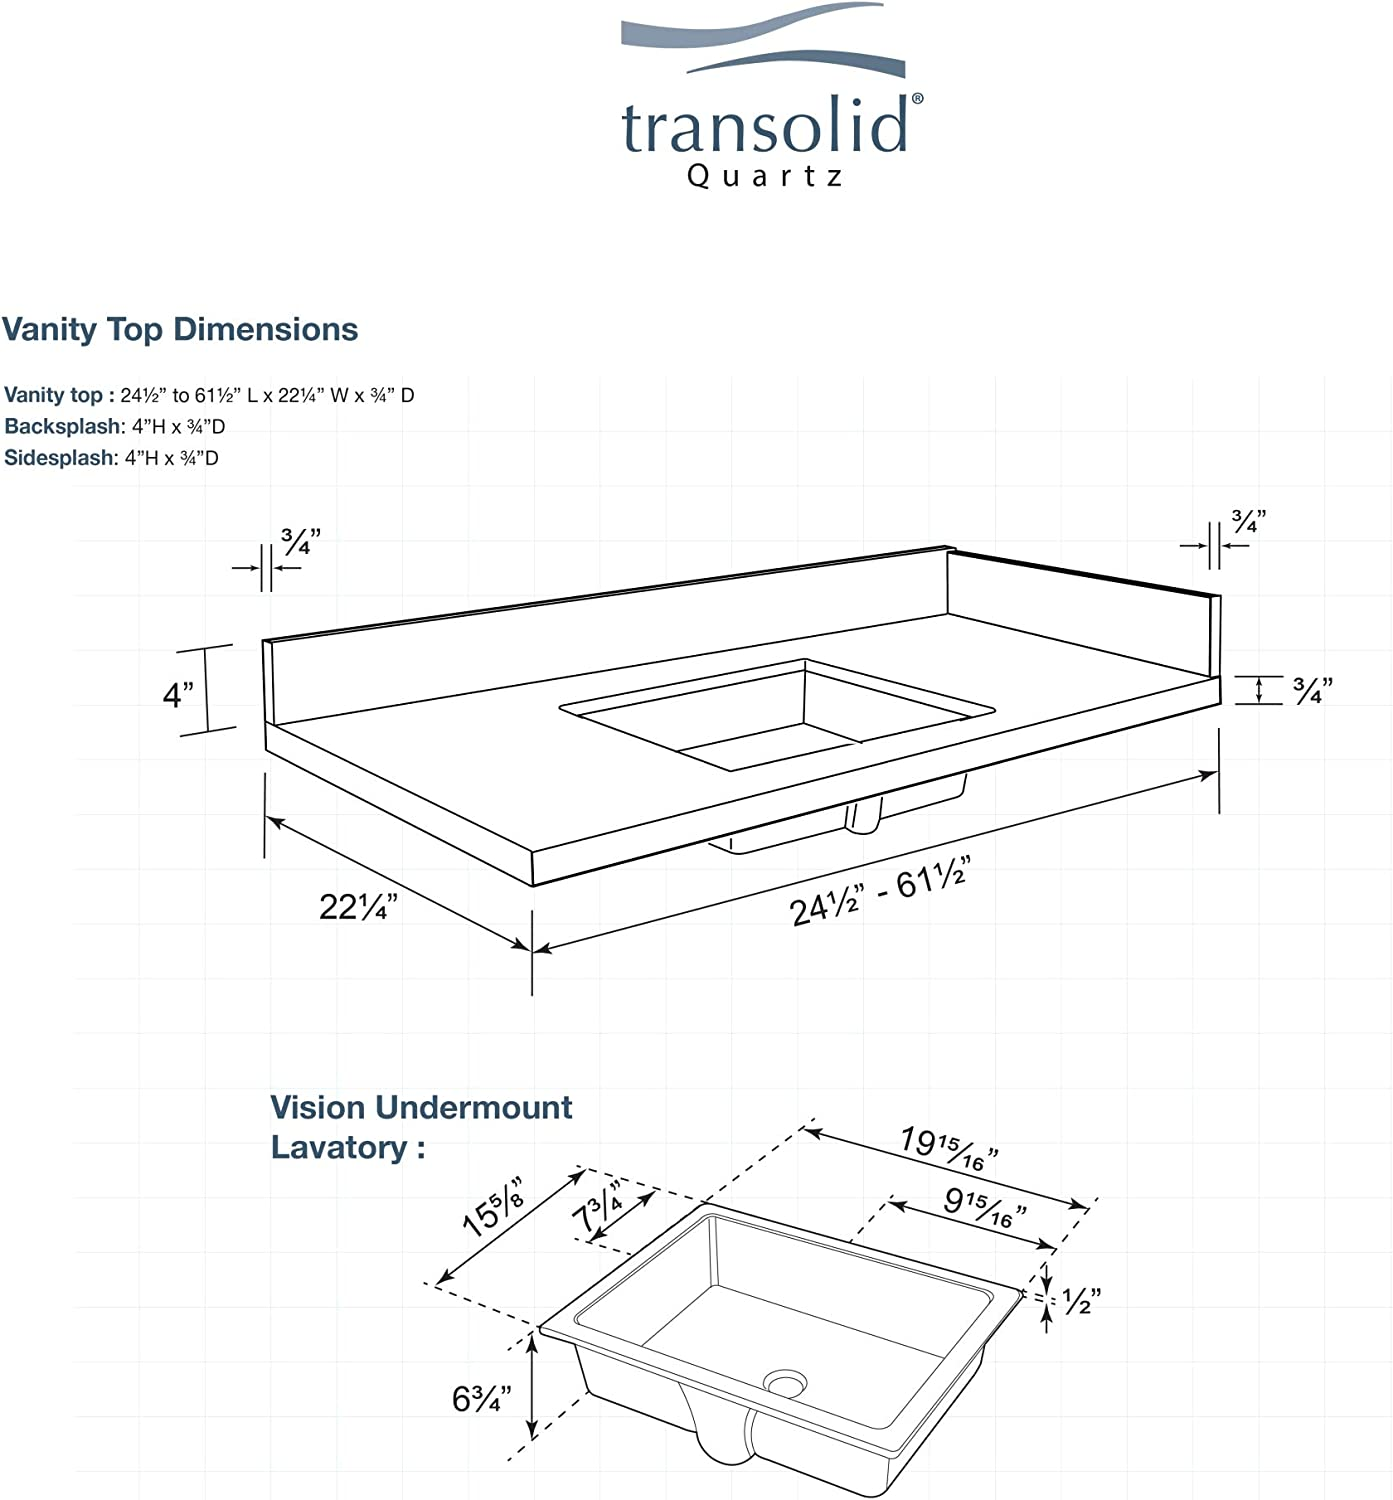 Transolid Vt25 25x22 1ku 4n A W 4 25 25 In D Quartz Vanity Top With 4 In Centerset And Rectangular Undermount Sink L X 22 25 D Almond Delite Amazon Com